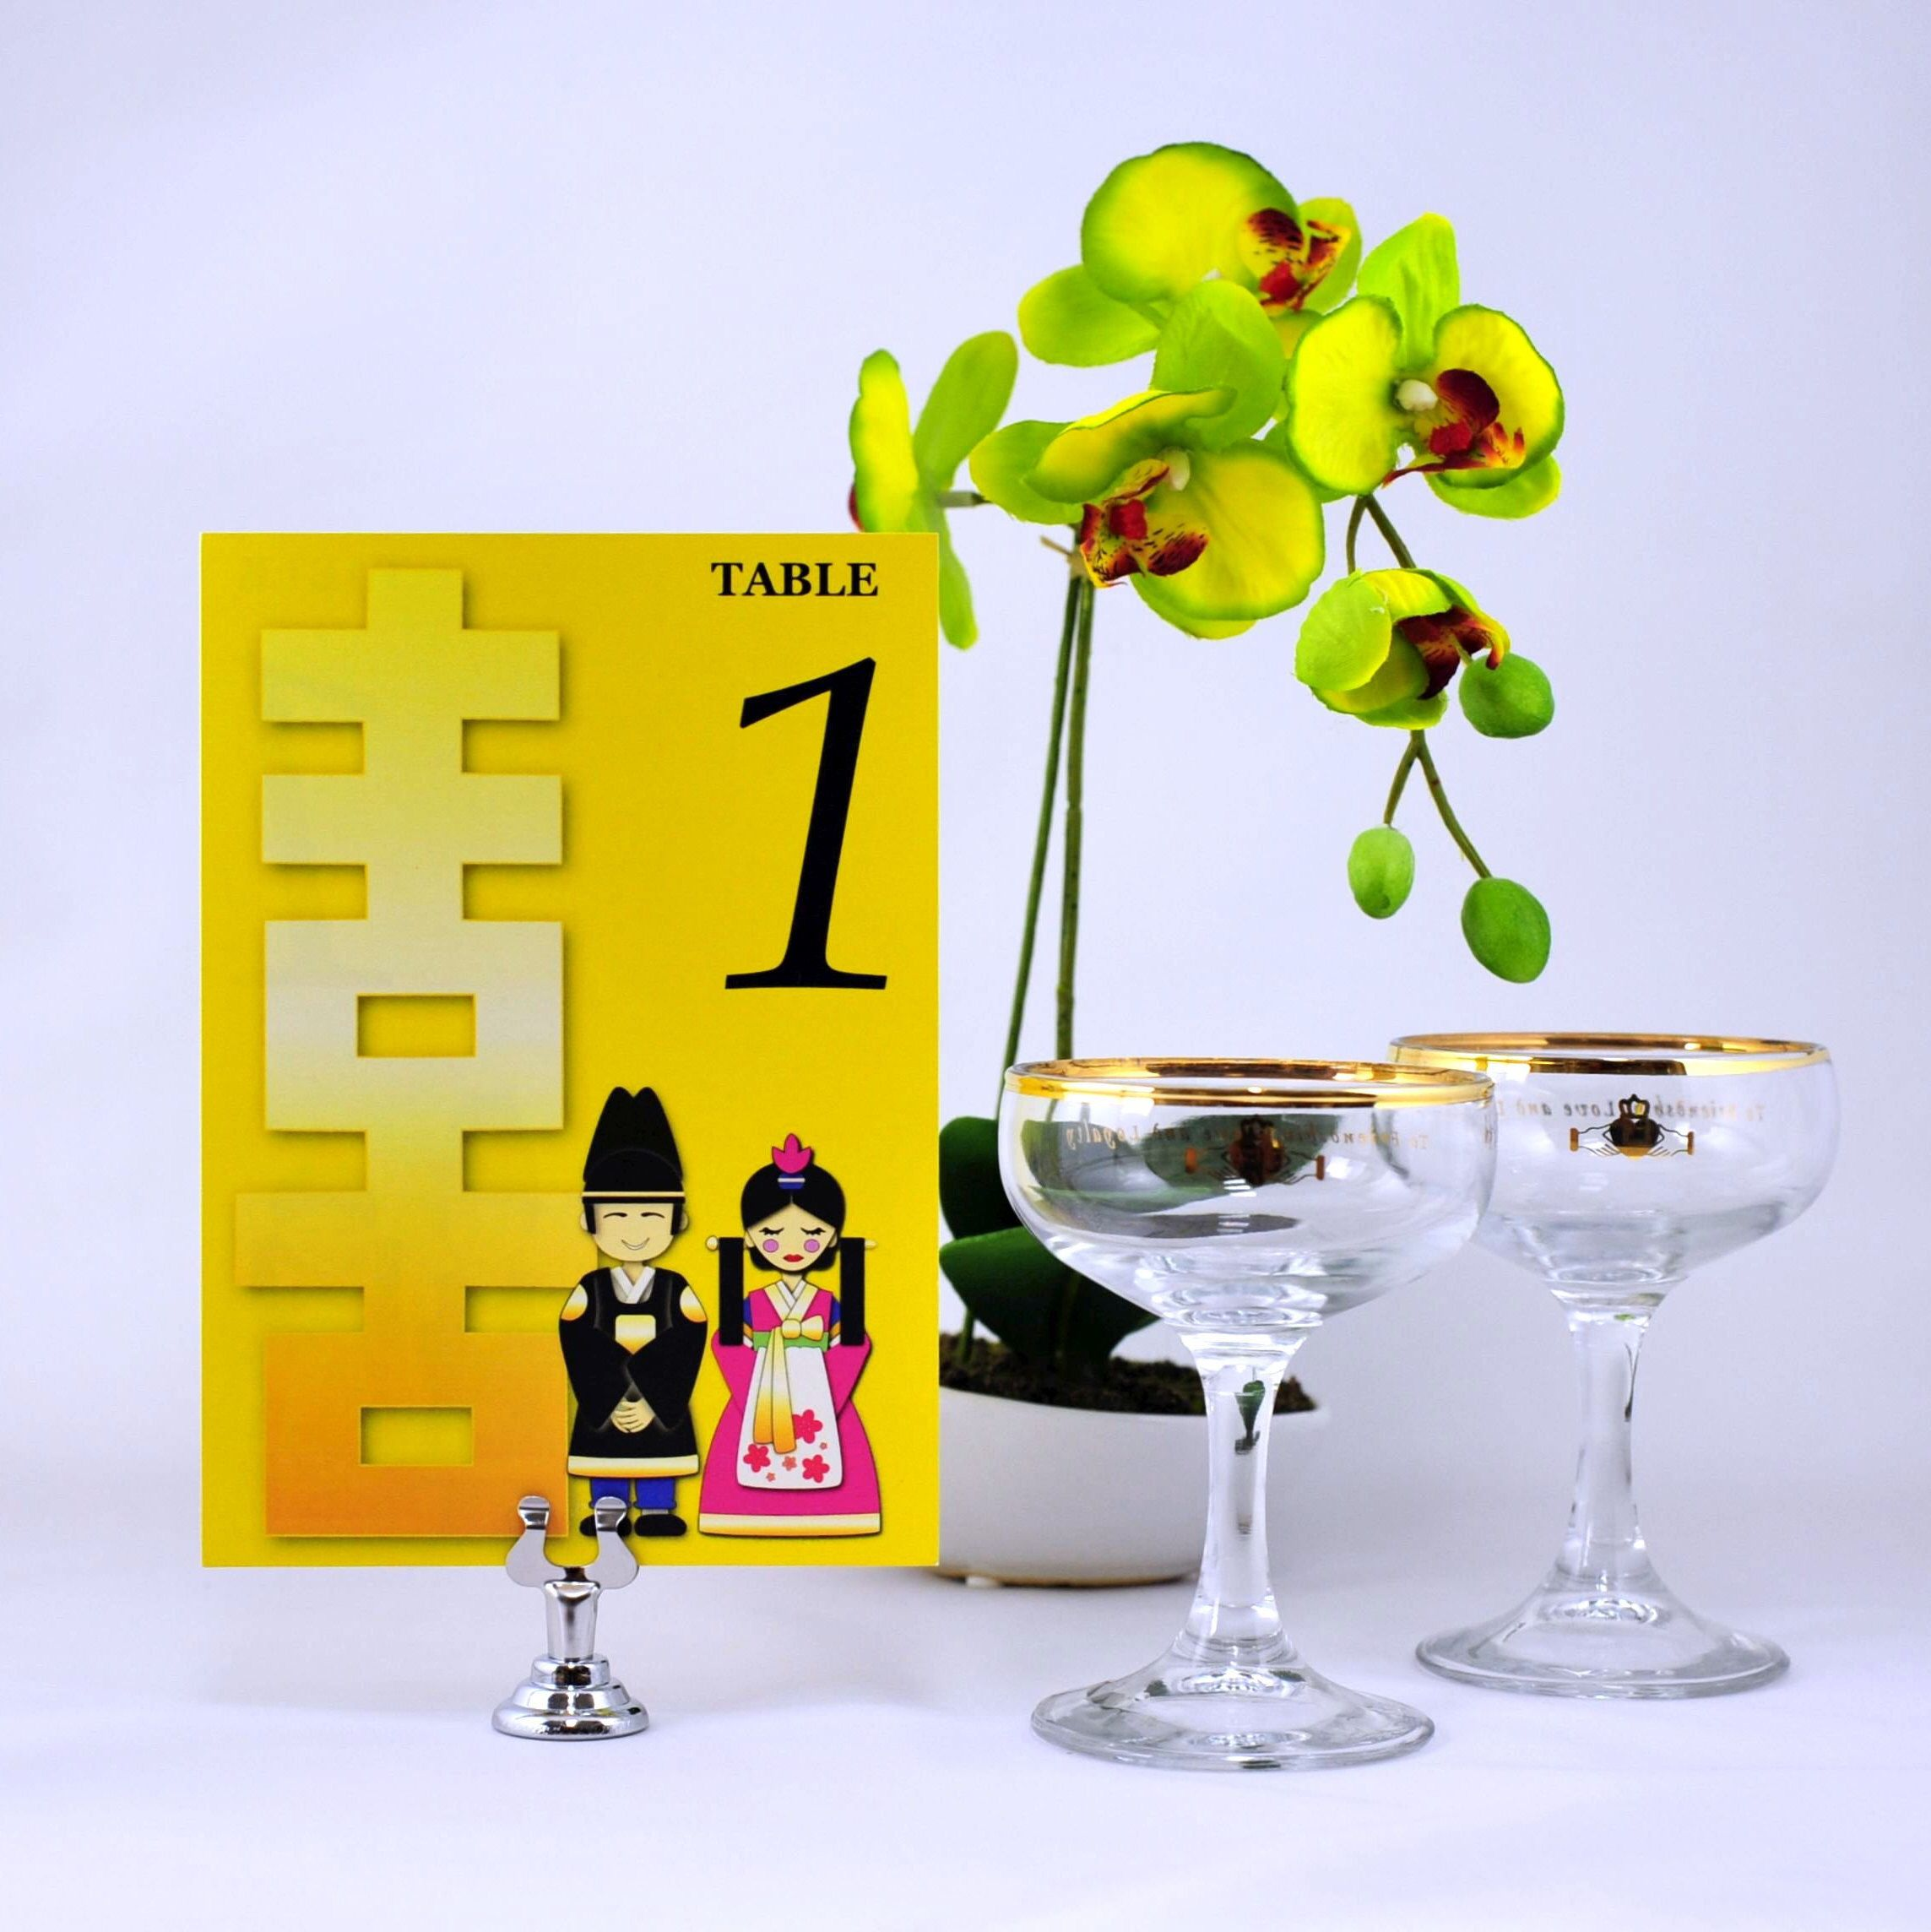 Korean Theme Wedding Reception Table Number Cards Ideas Decorations